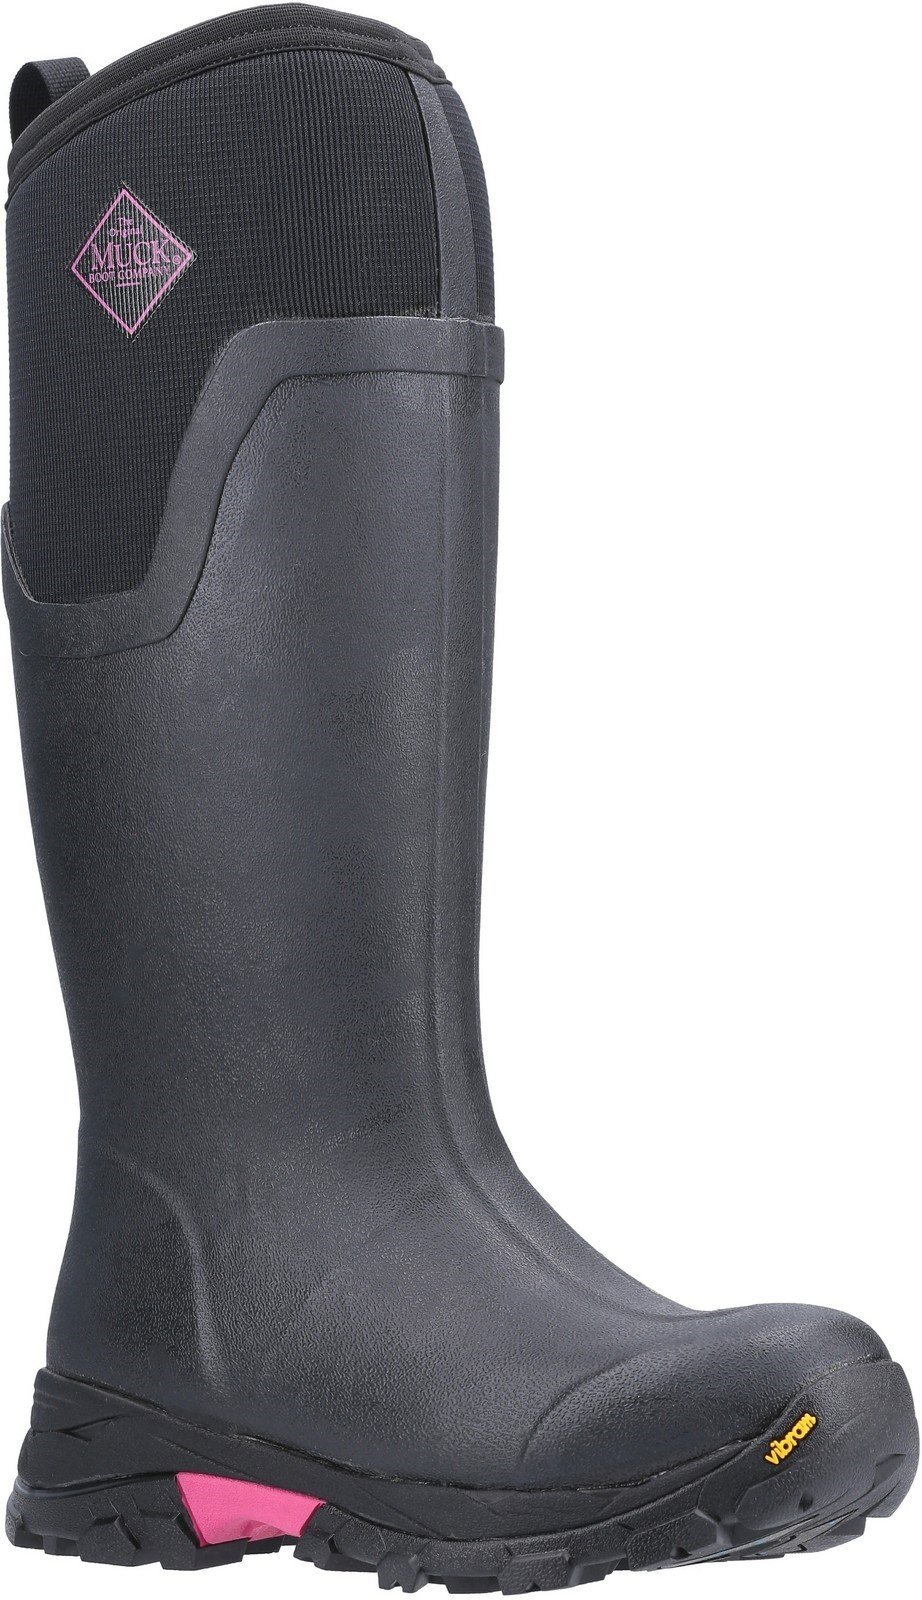 Muck Boots Unisex Arctic Ice Tall Extreme Conditions Boot Various Colours 26031 - Black/Hot Pink 3